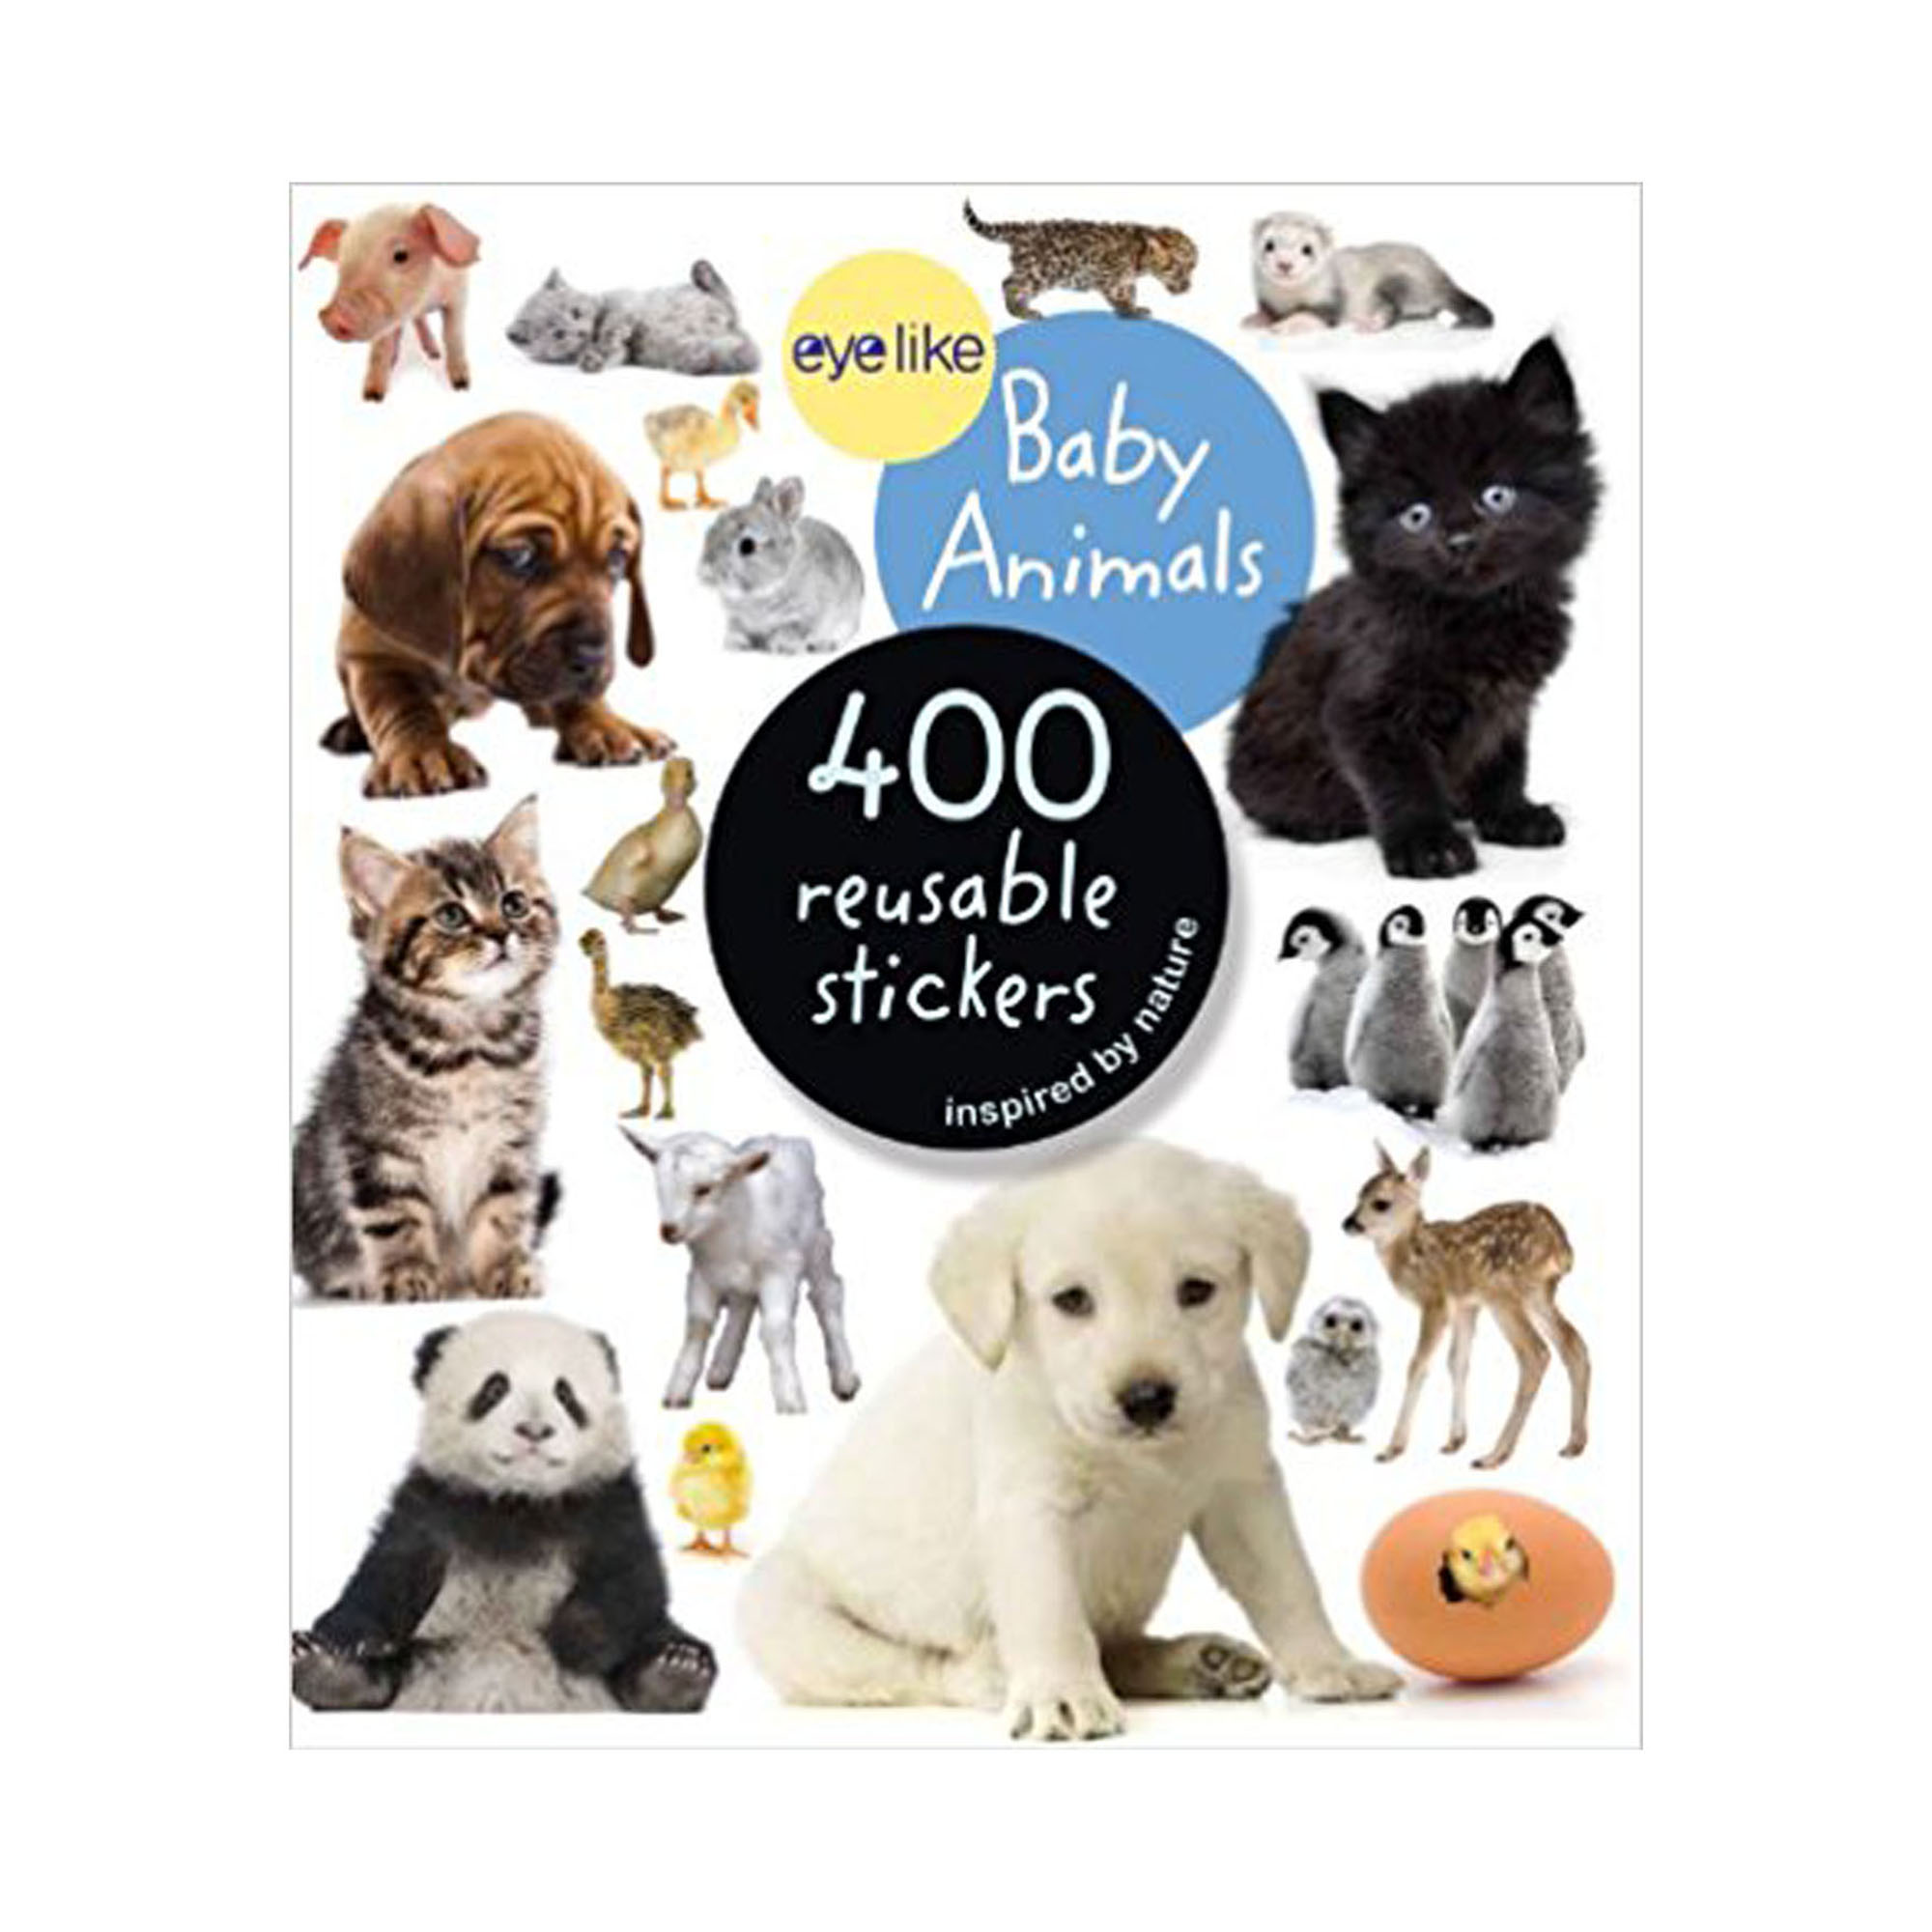 Eyelike baby animals book